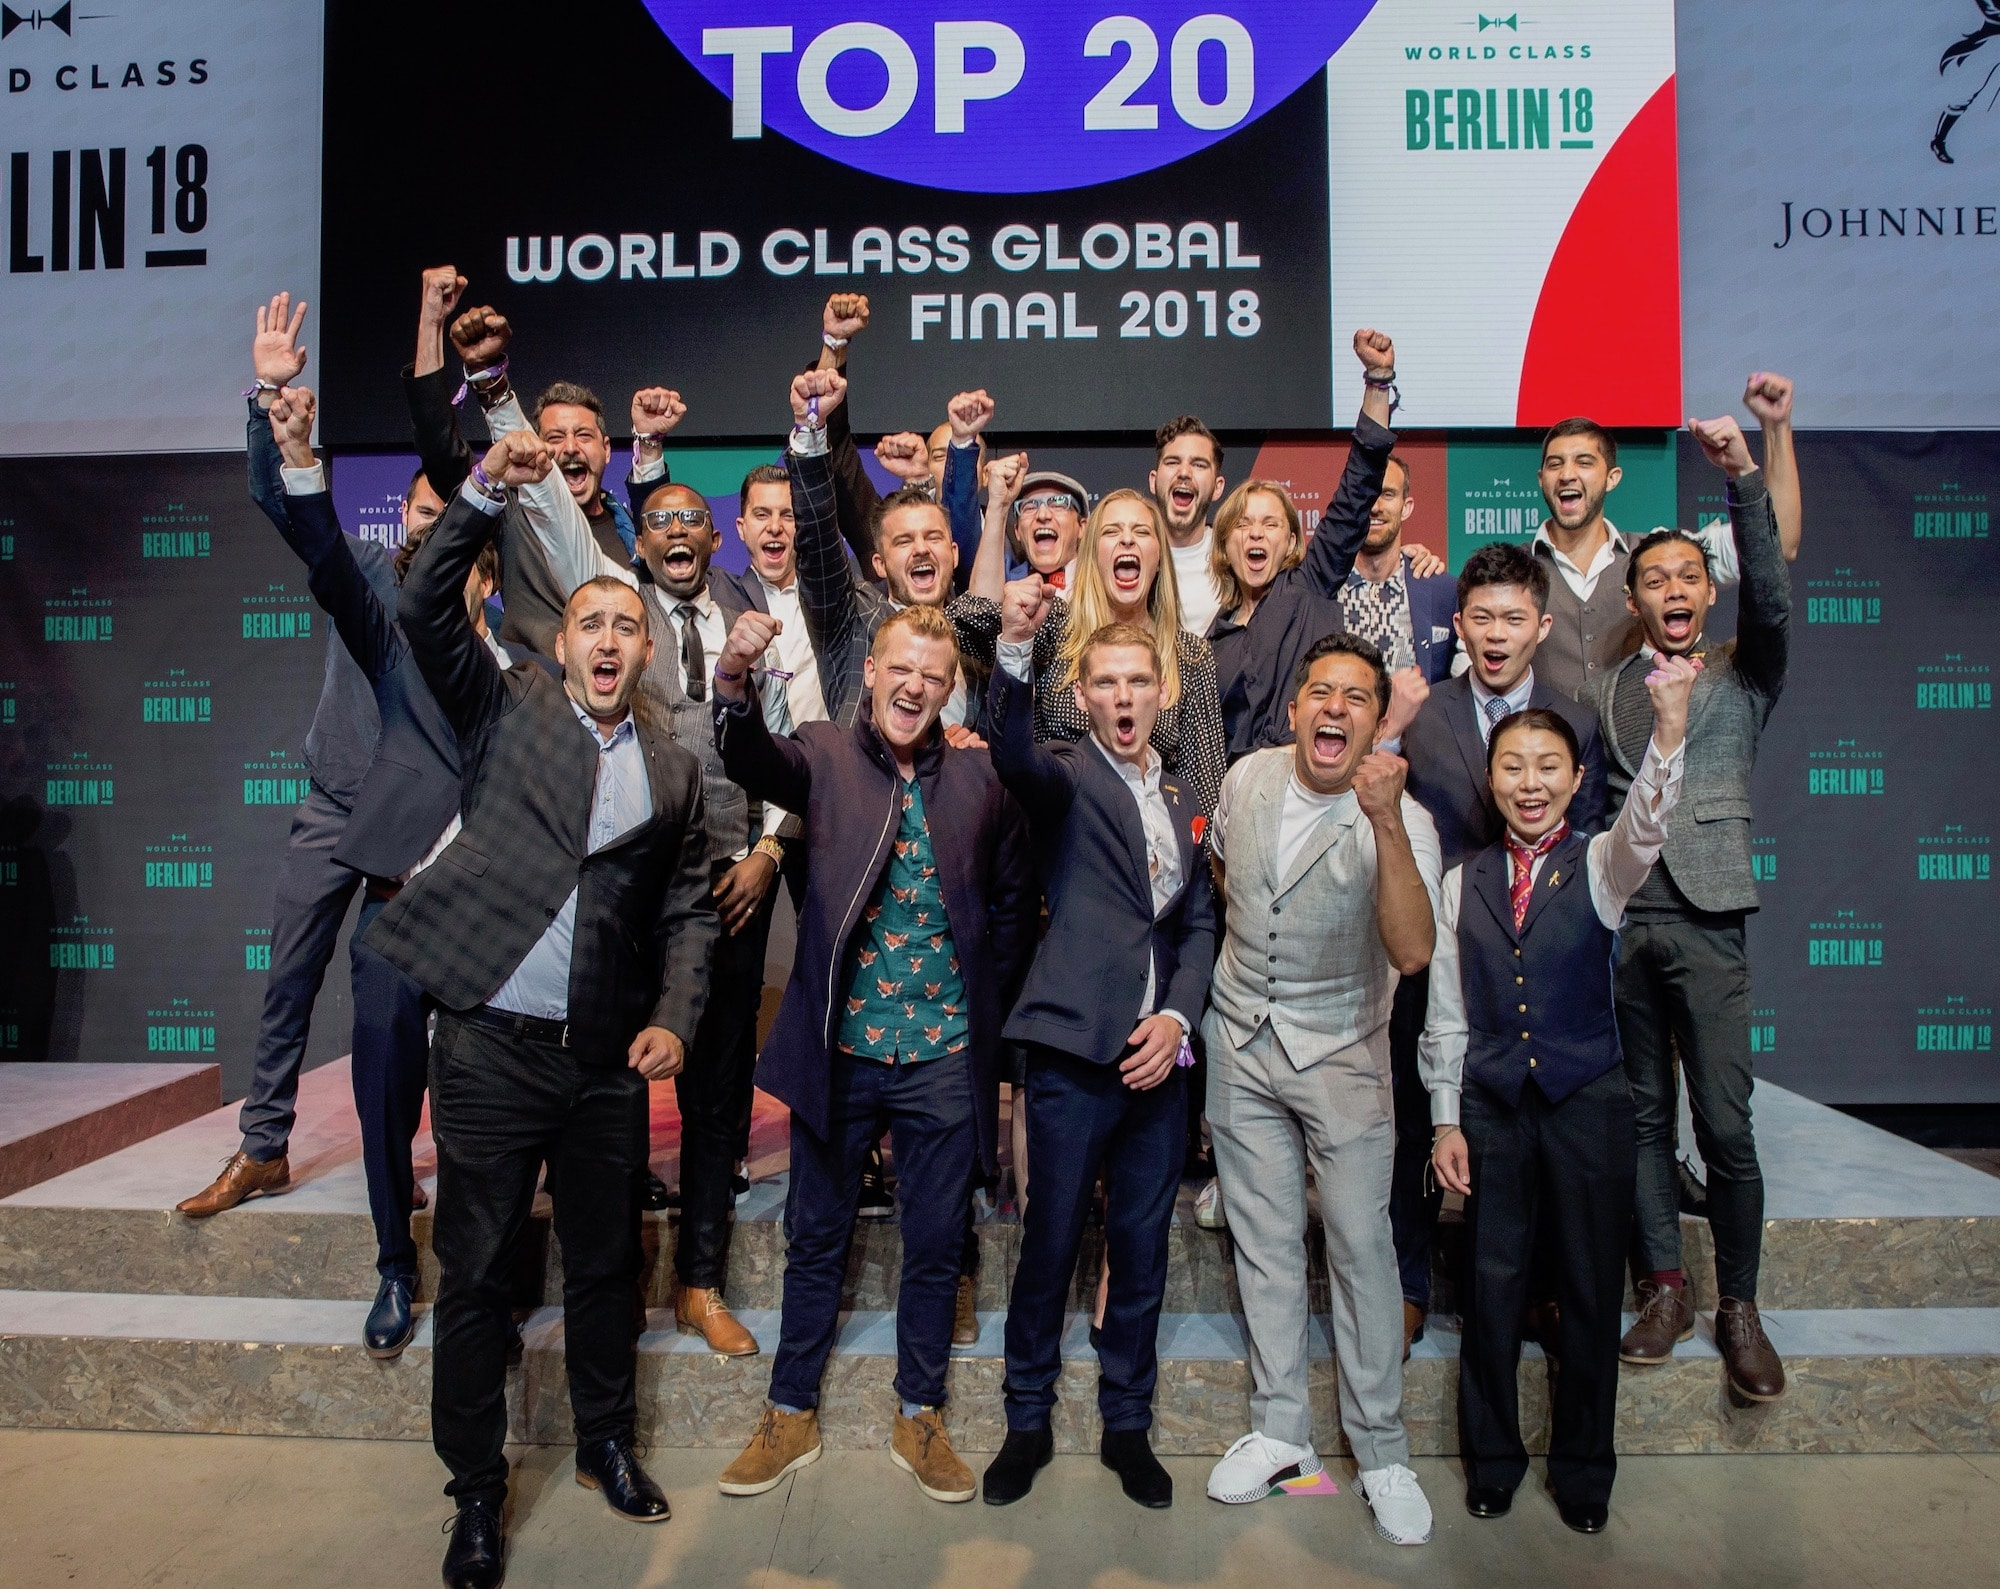 Australia's Orlando Marzo crowned world's best bartender, and other World Class Asian winners